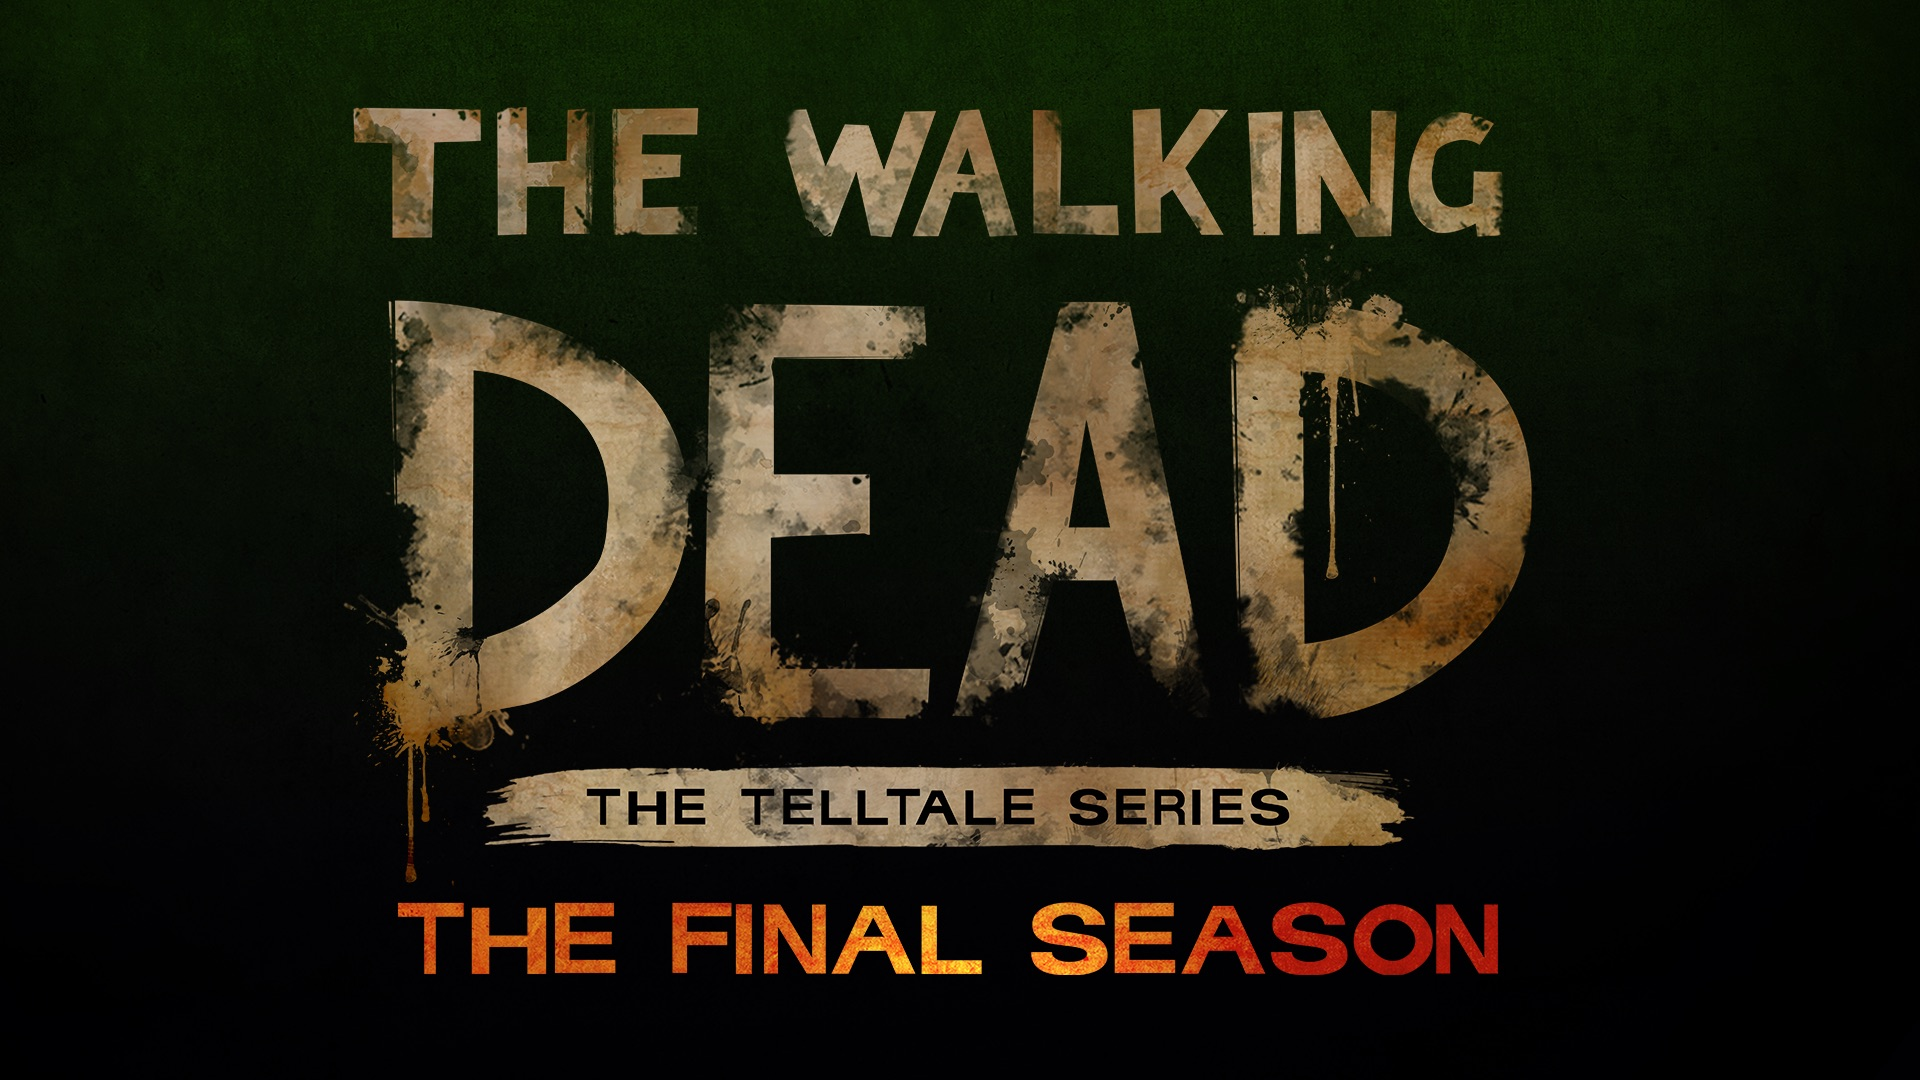 Telltale Games annuncia l'ultima stagione di The Walking Dead